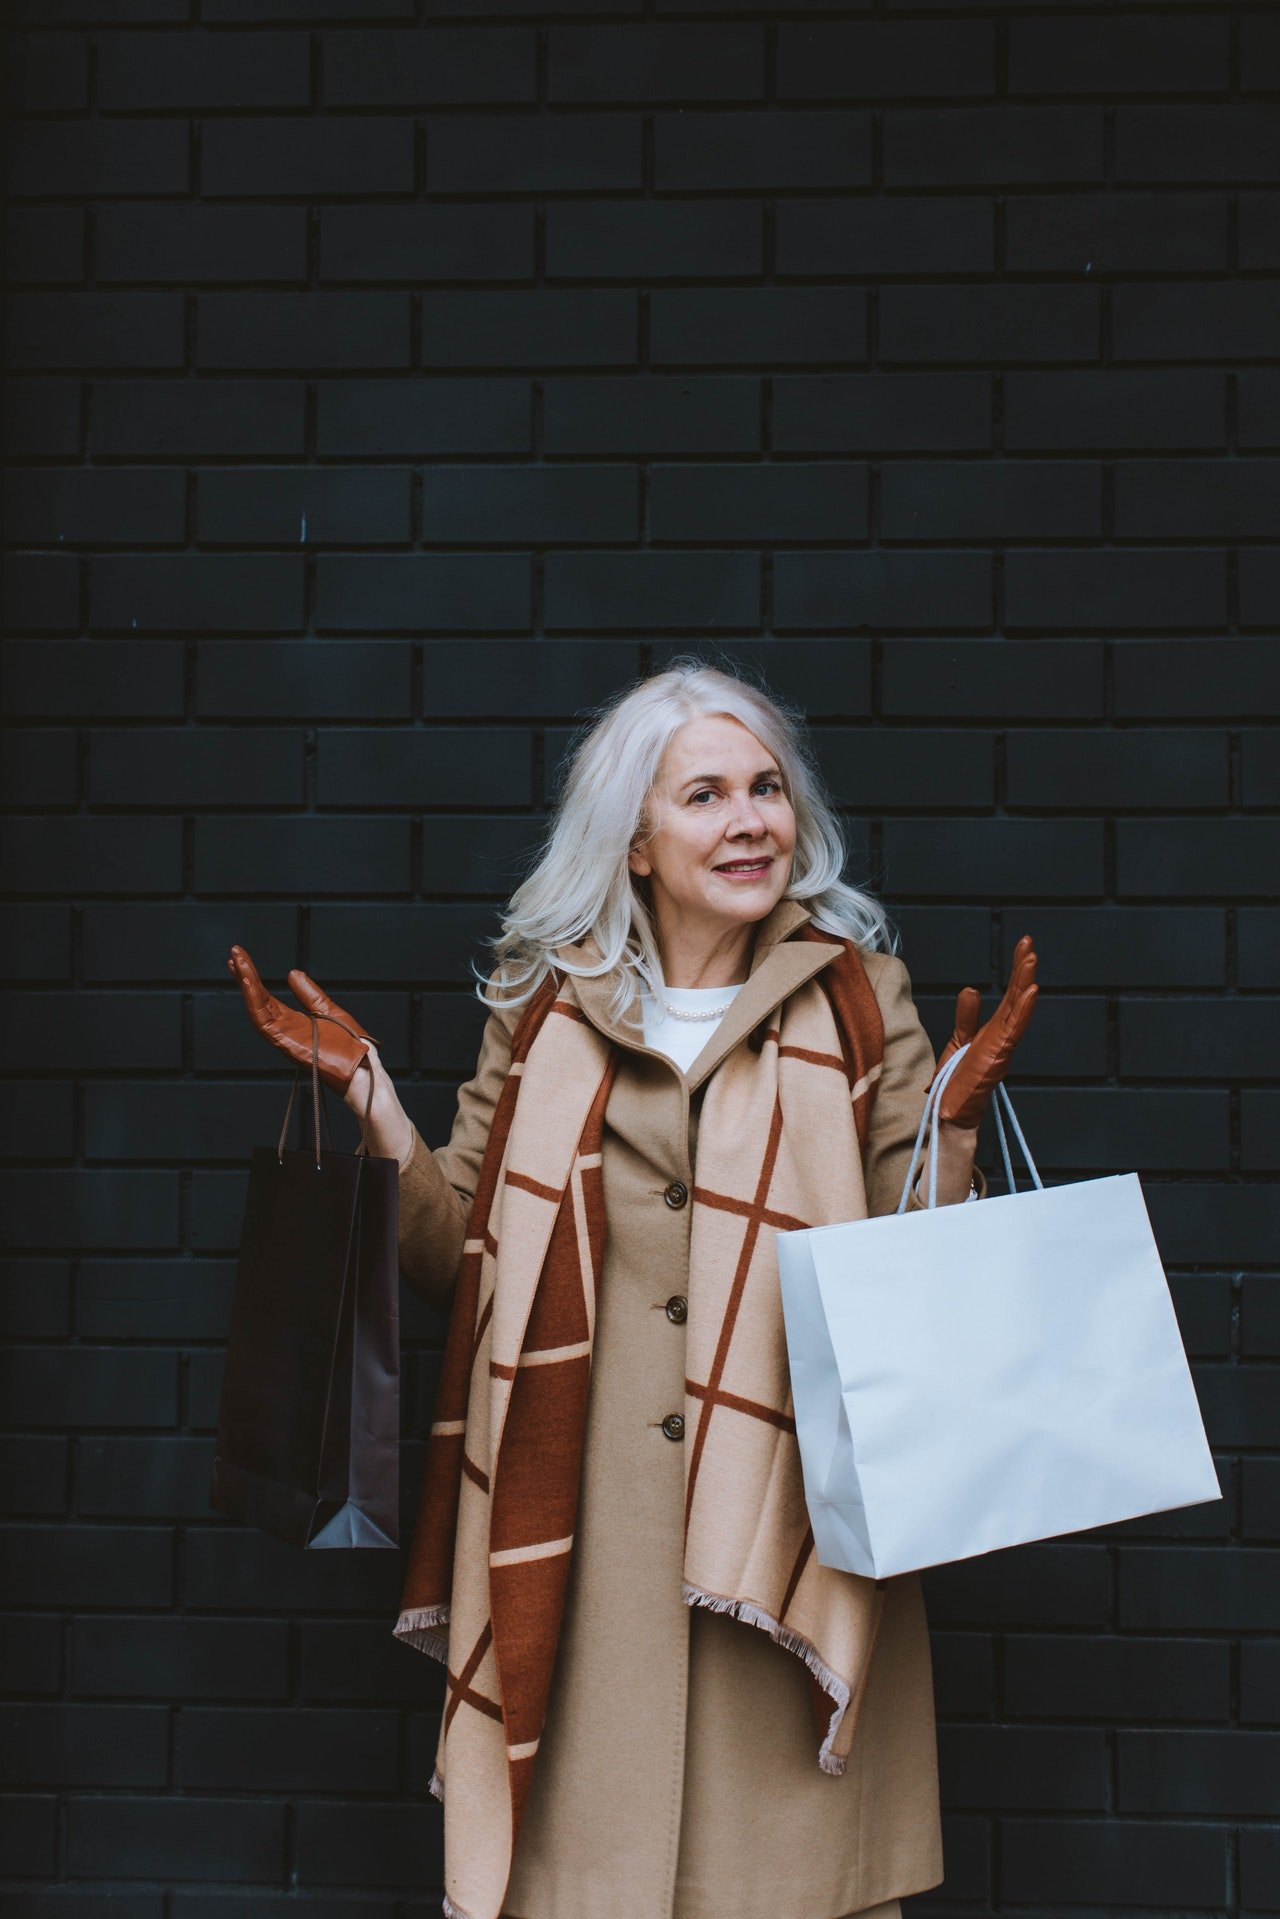 Older woman with shopping bags | Source: Pexels